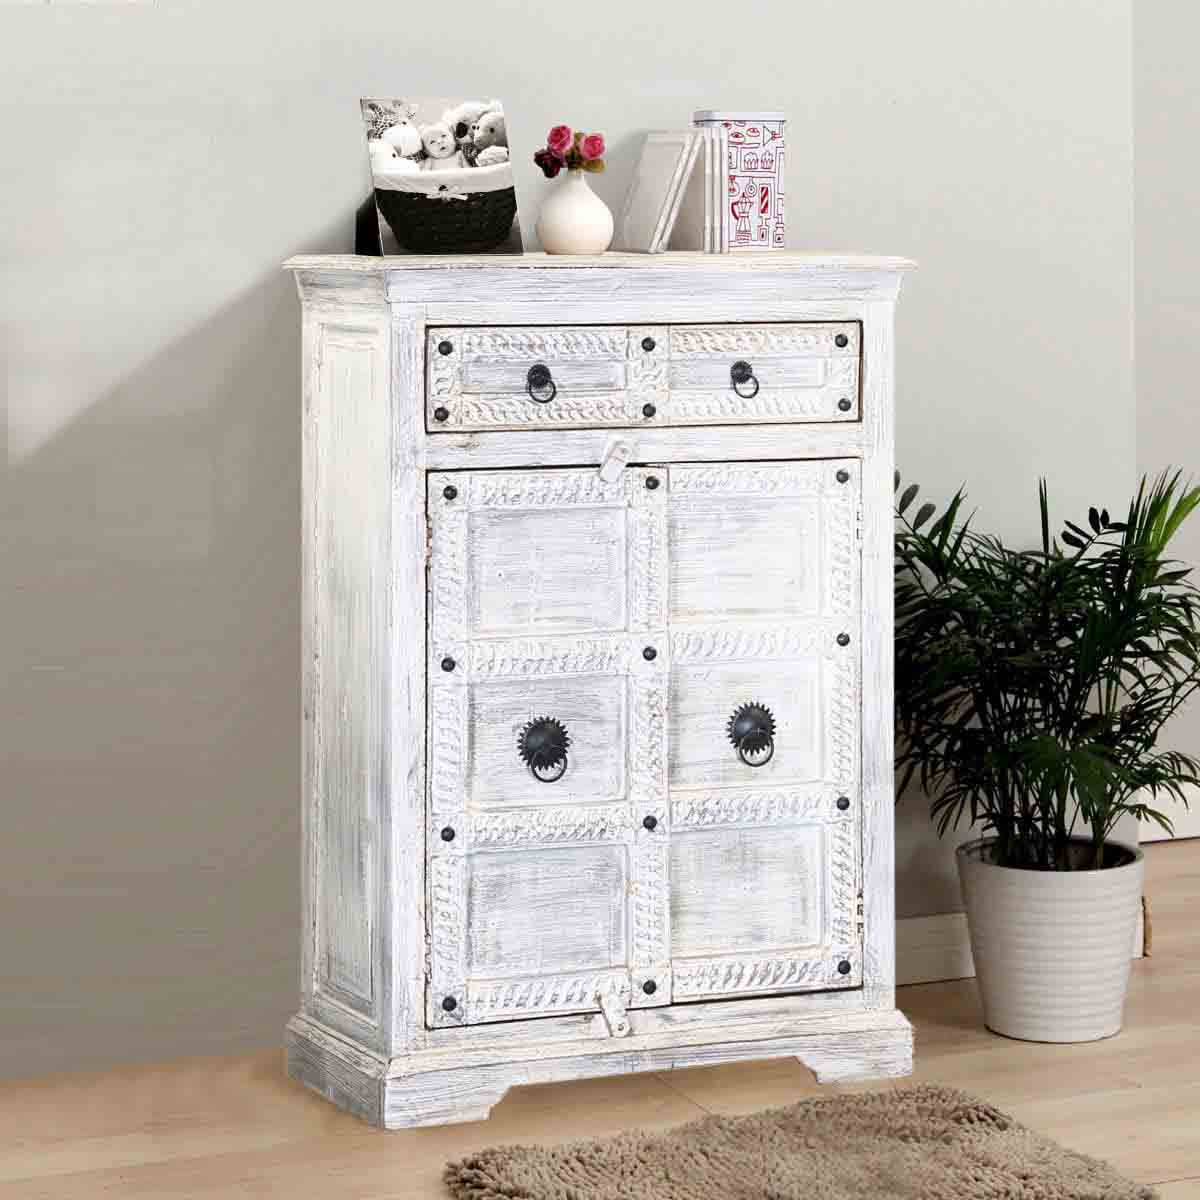 today white free home drawer door kendall overstock product cabinet systembuild inch shipping storage base garden with drawers